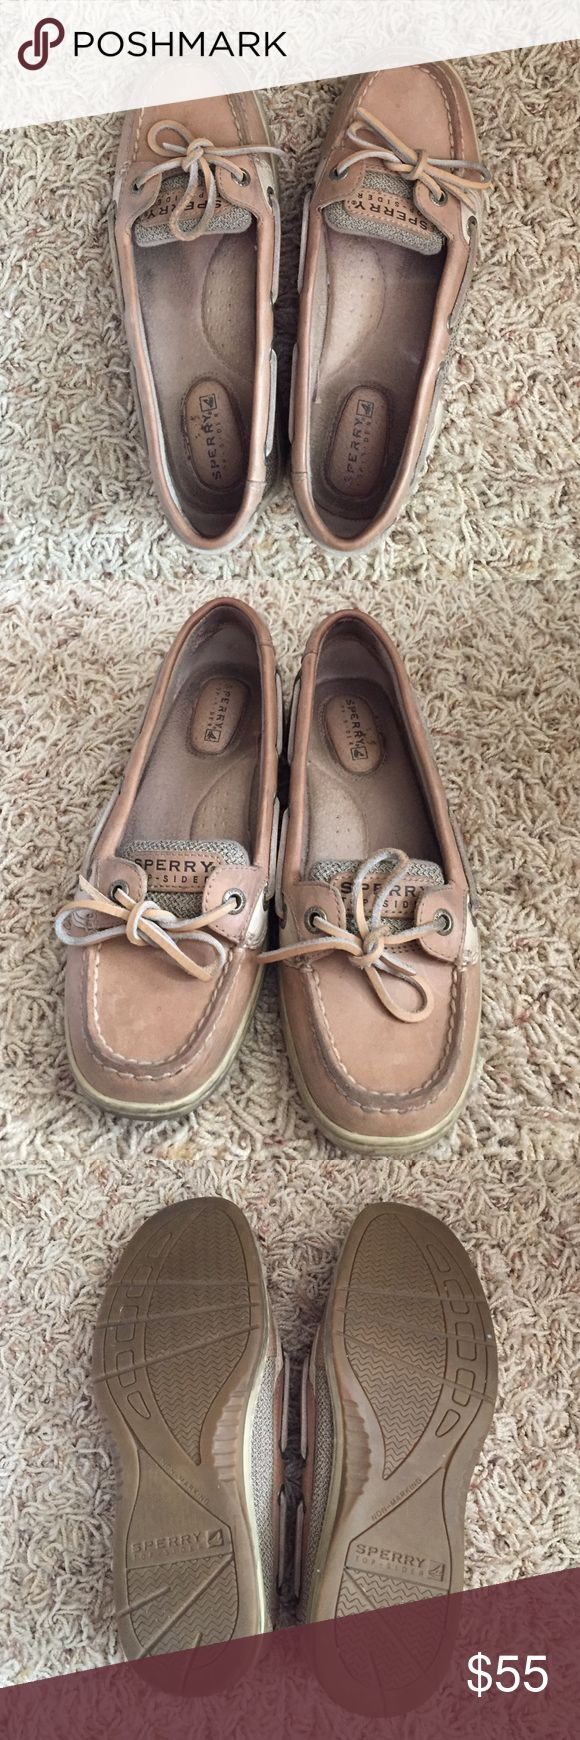 Sperry Top-Sider Angelfish size 5.5 Womens Sperry Top-Sider Angelfish size 5.5 Sperry Top-Sider Shoes